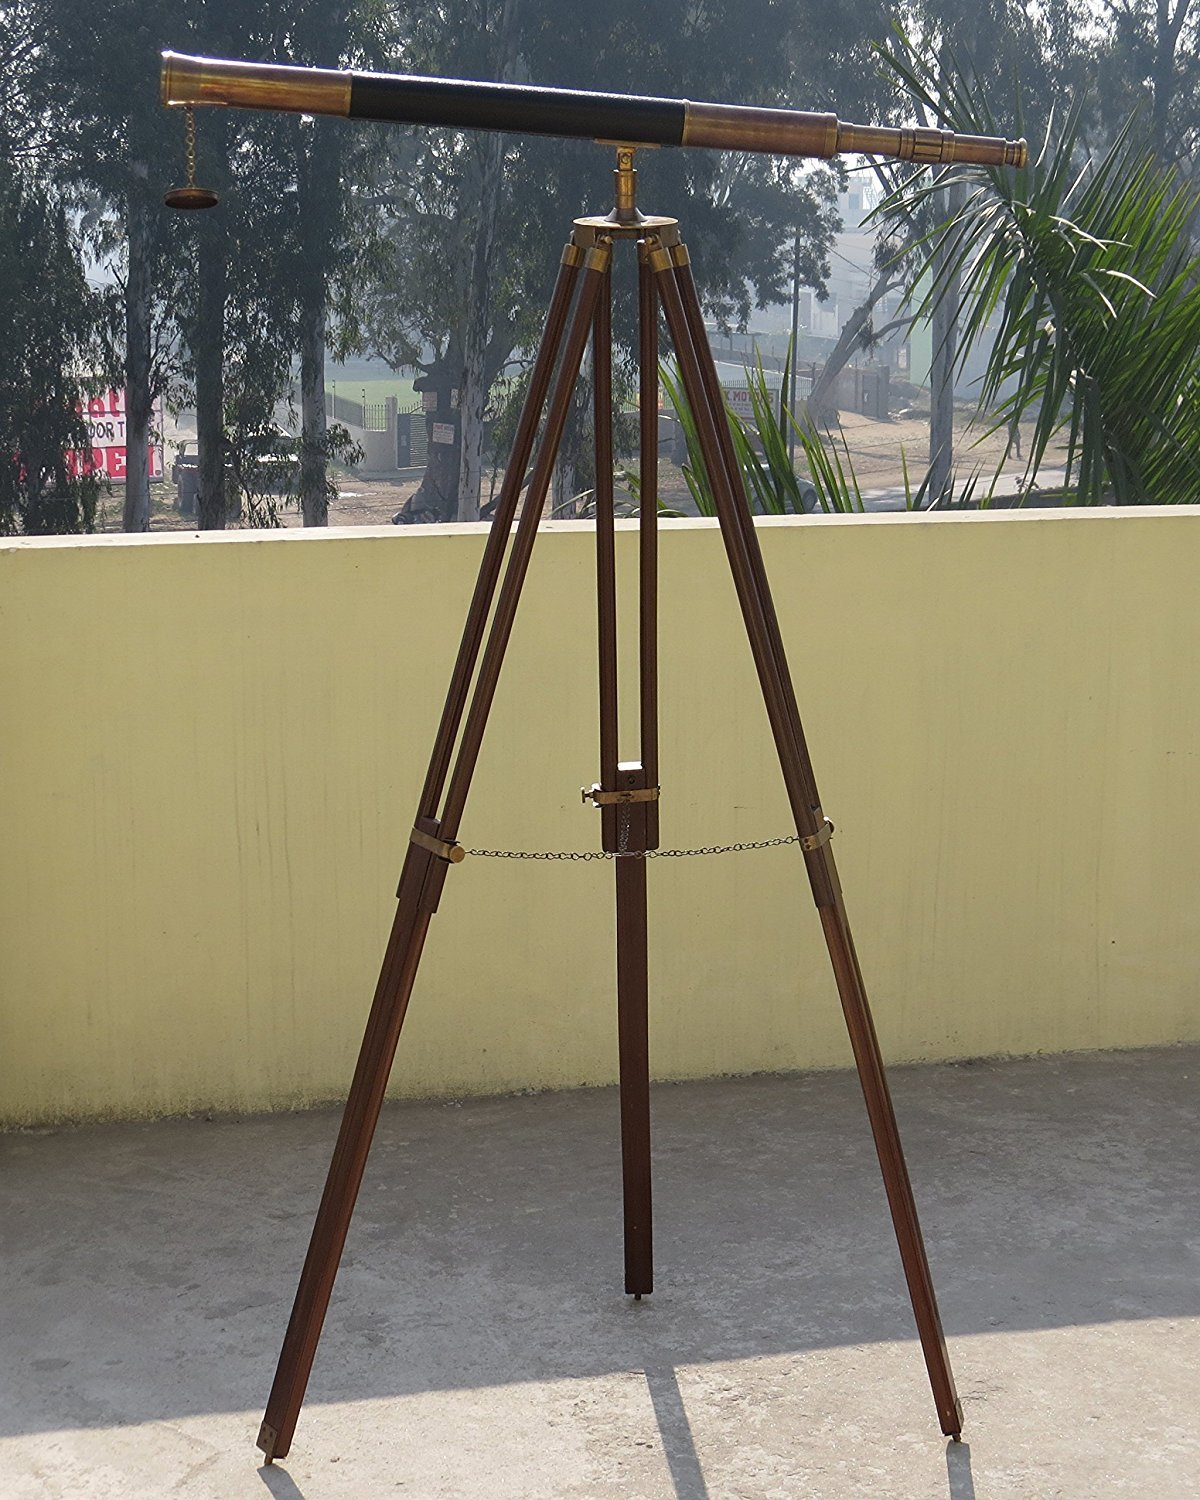 NM071071B Brass Harbor Master Telescope with Tripod Stand 65'' - Case Pack of 6